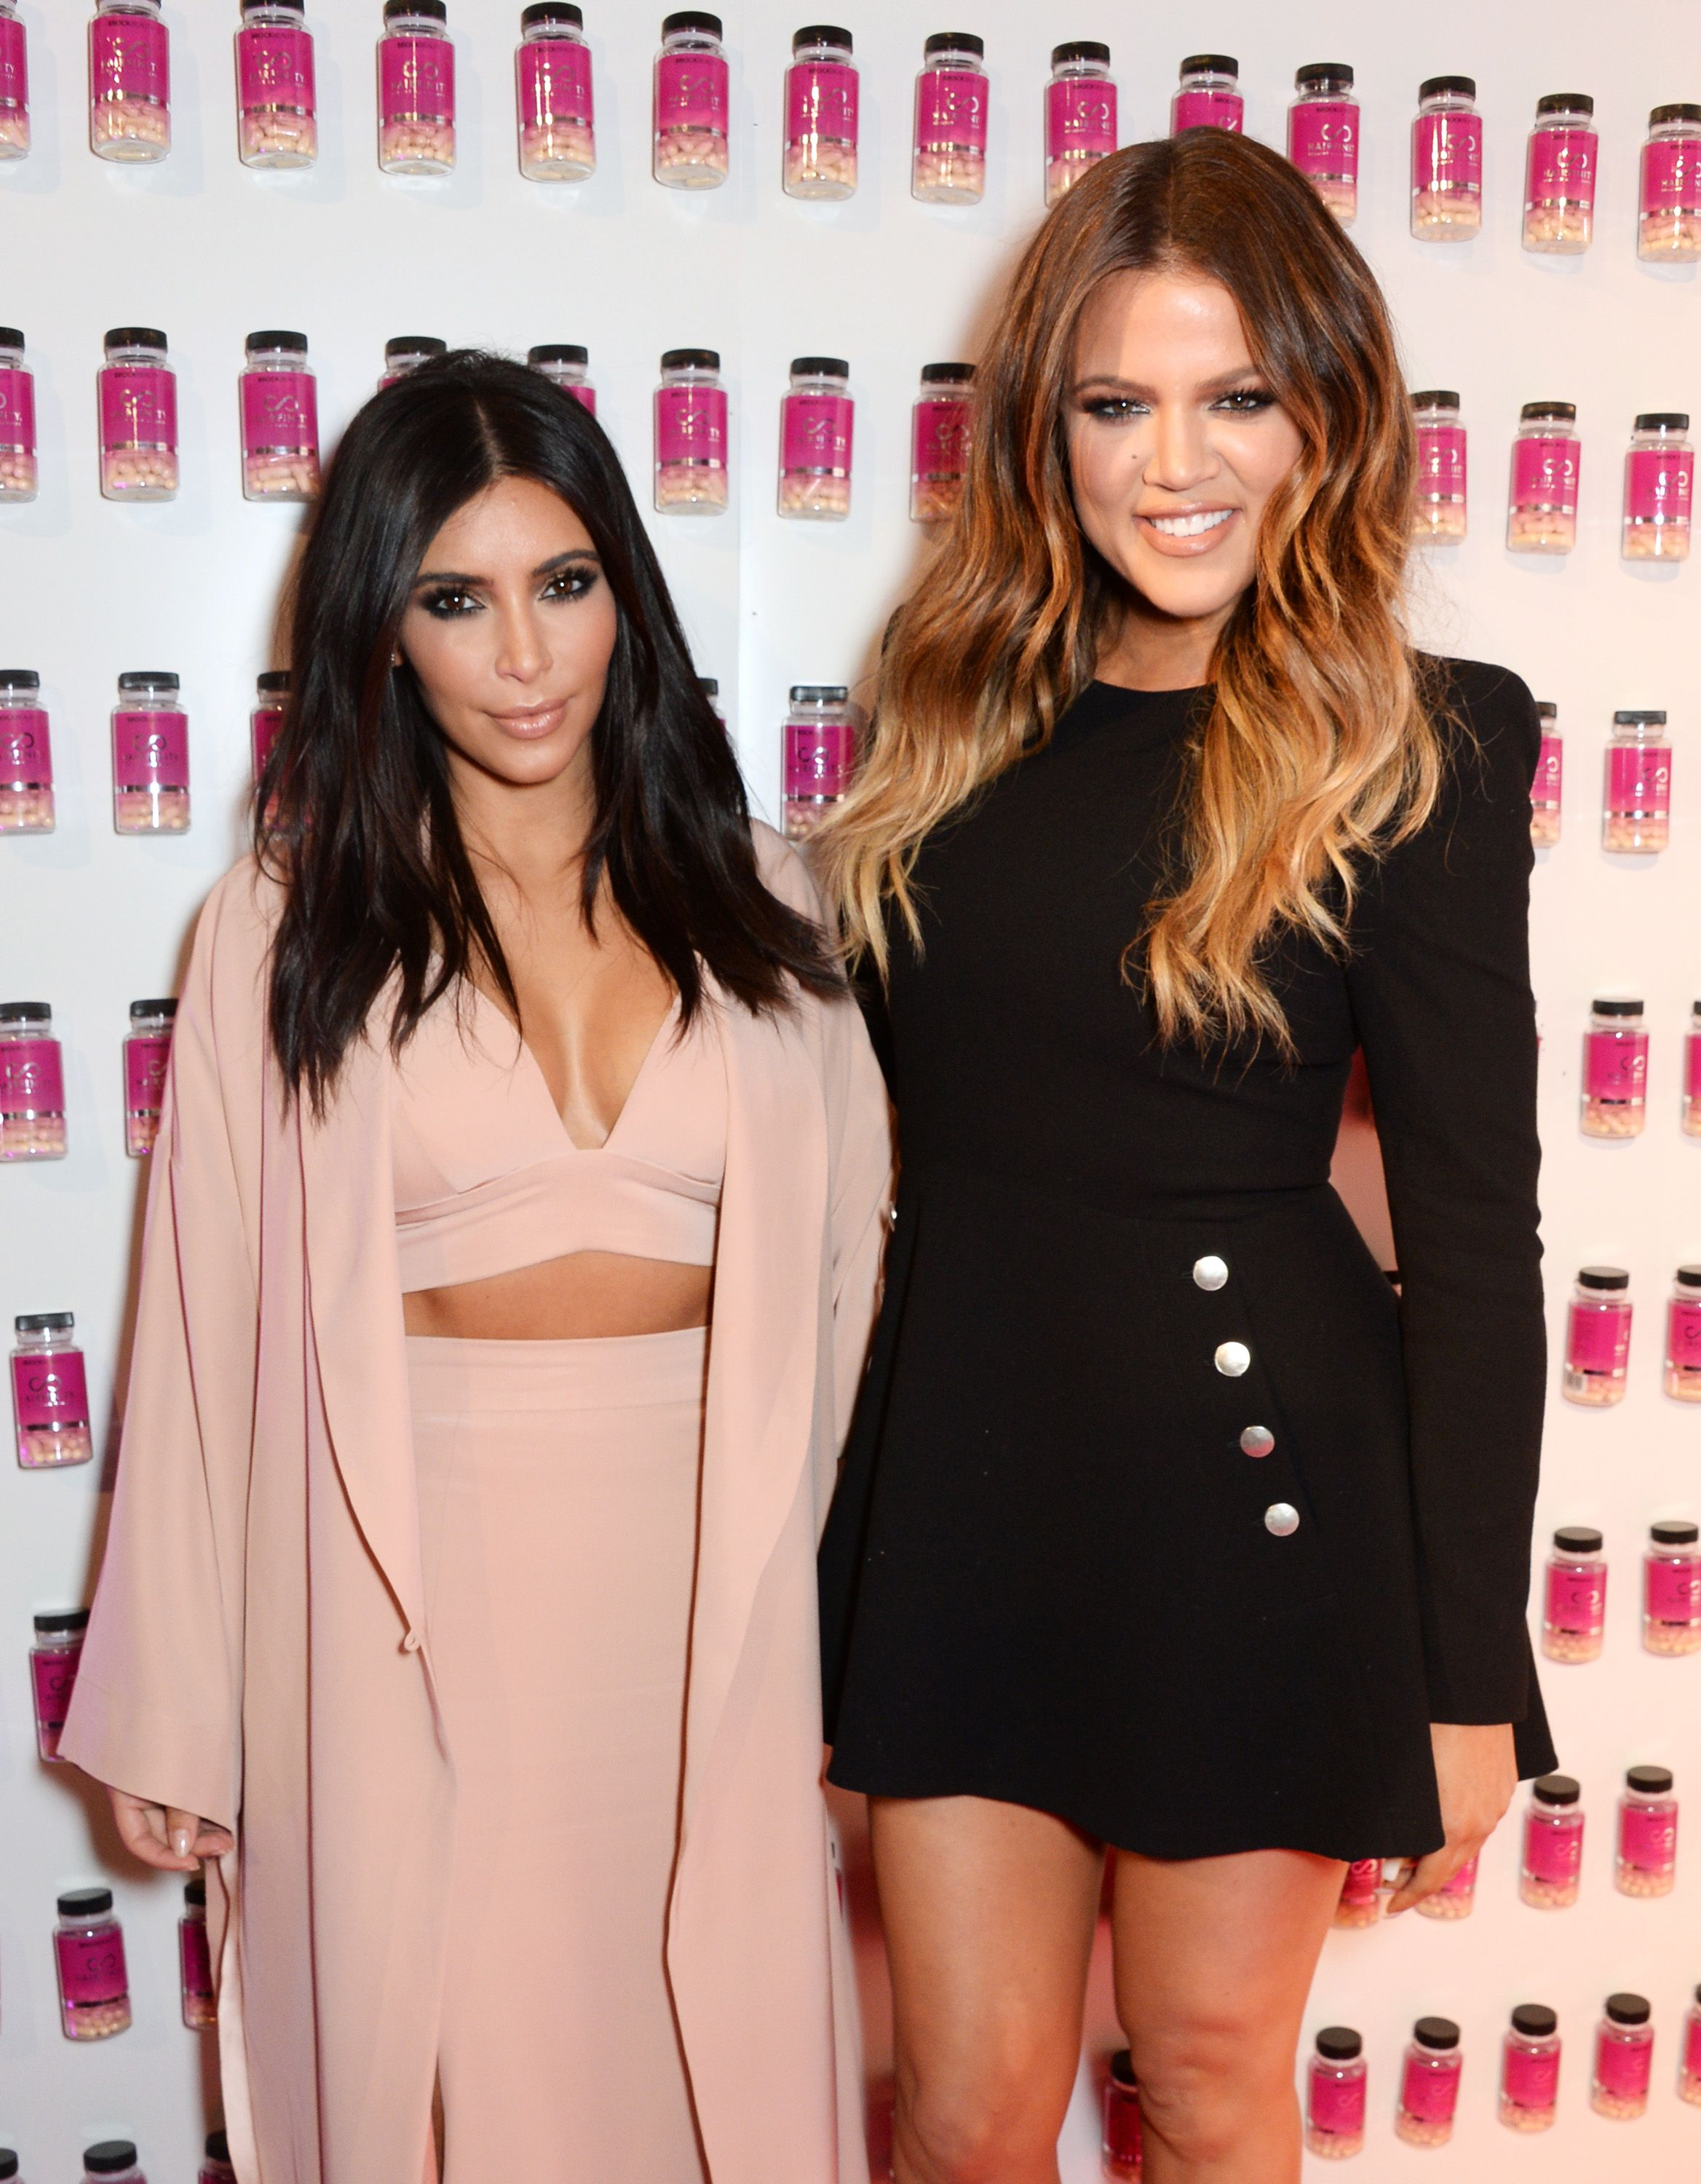 Kim Kardashian West and Khloe Kardashian at the Hairfinity UK Launch as special guests at Il Bottaccio on November 8, 2014   Photo: Getty Images